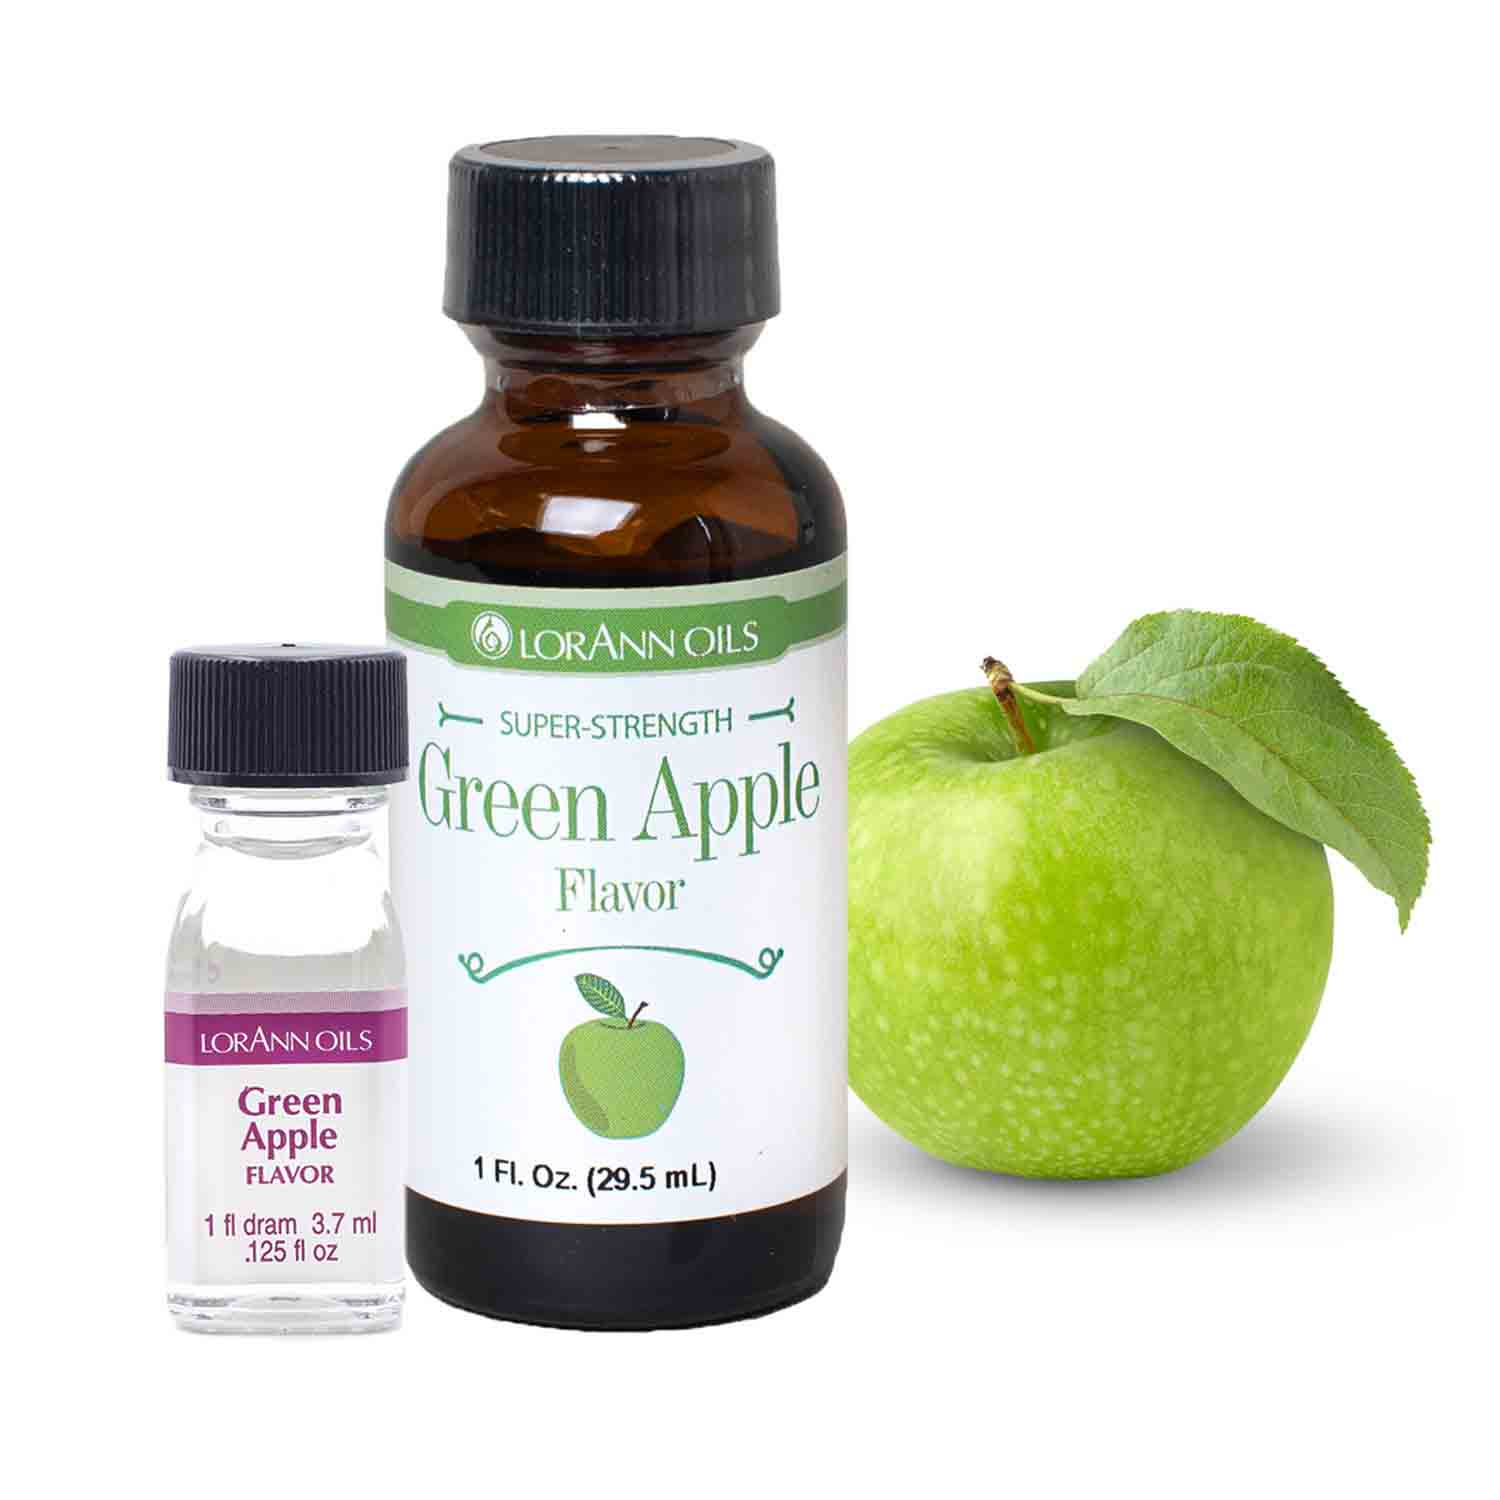 Green Apple Super-Strength Flavor